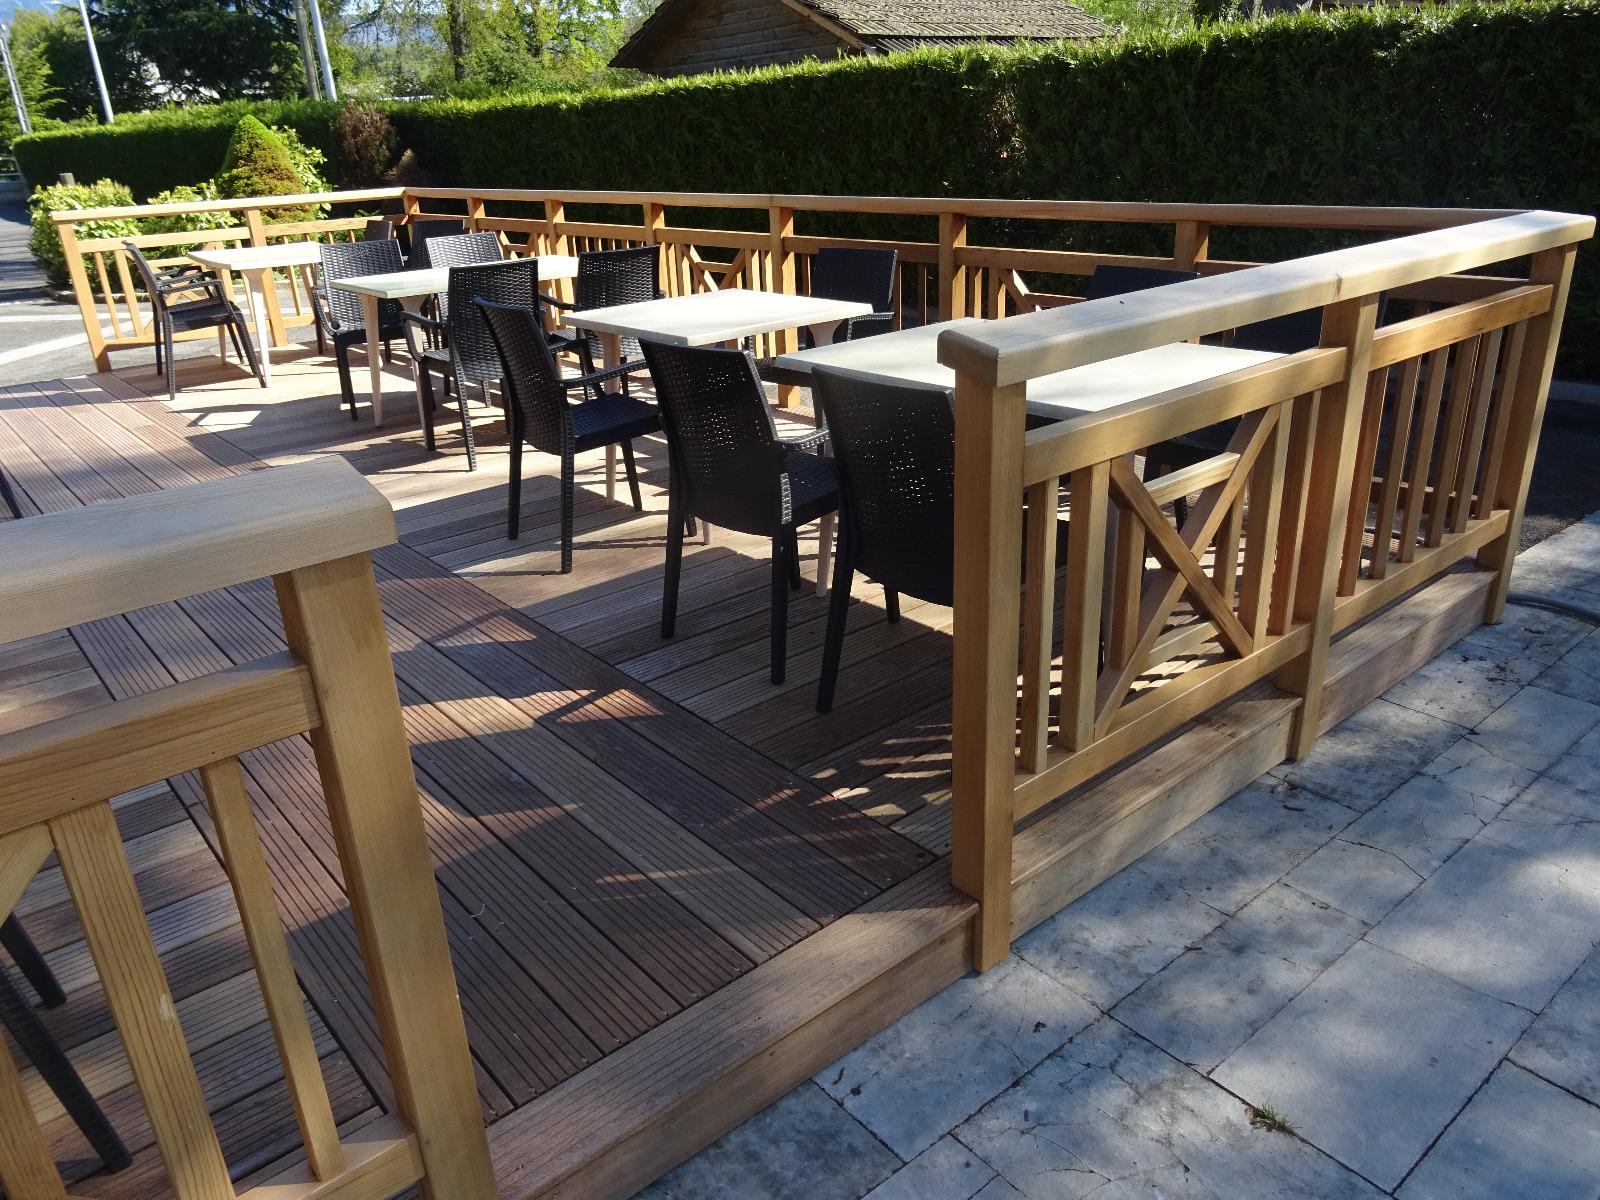 Menuiserie à Boëge, Fabrication de Terrasse en Bois